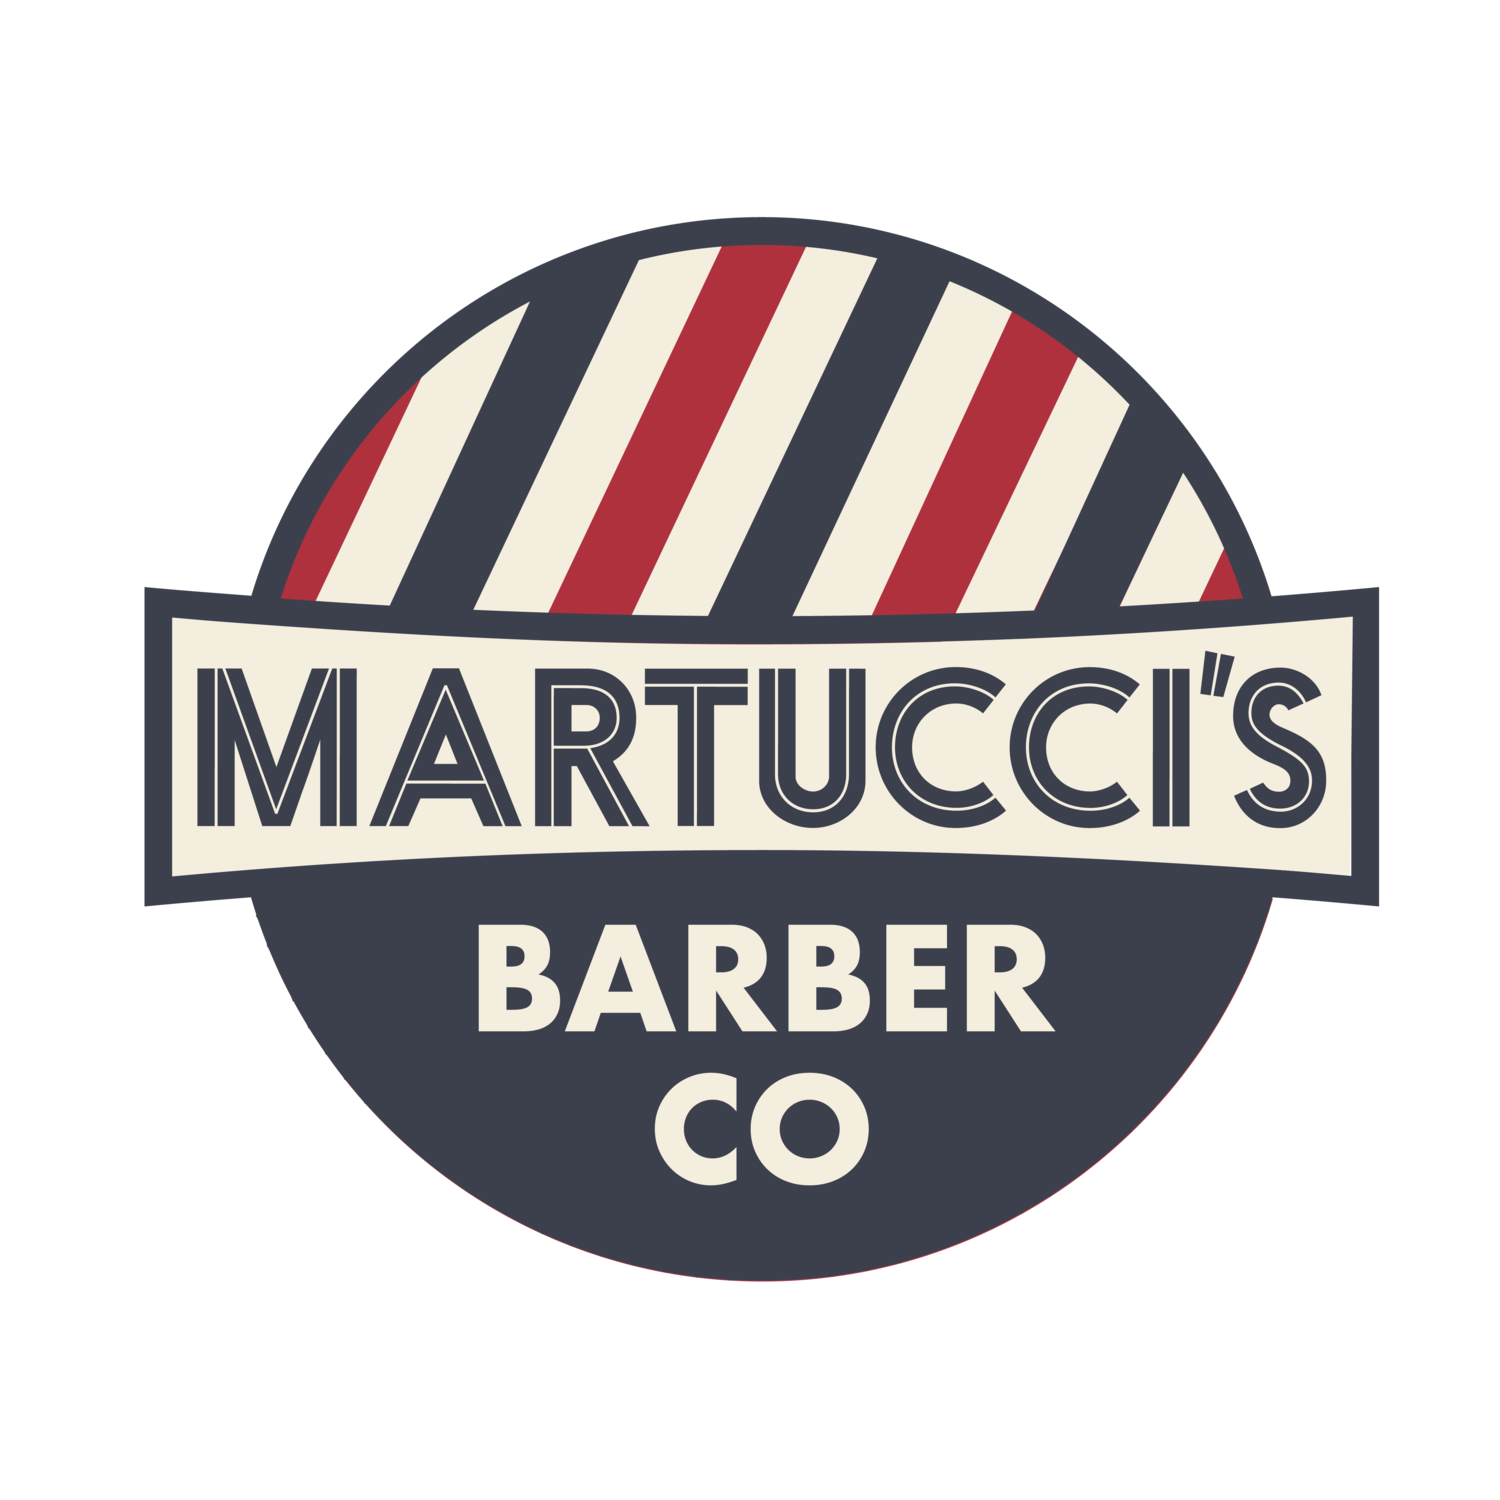 Martucci's Barber Co